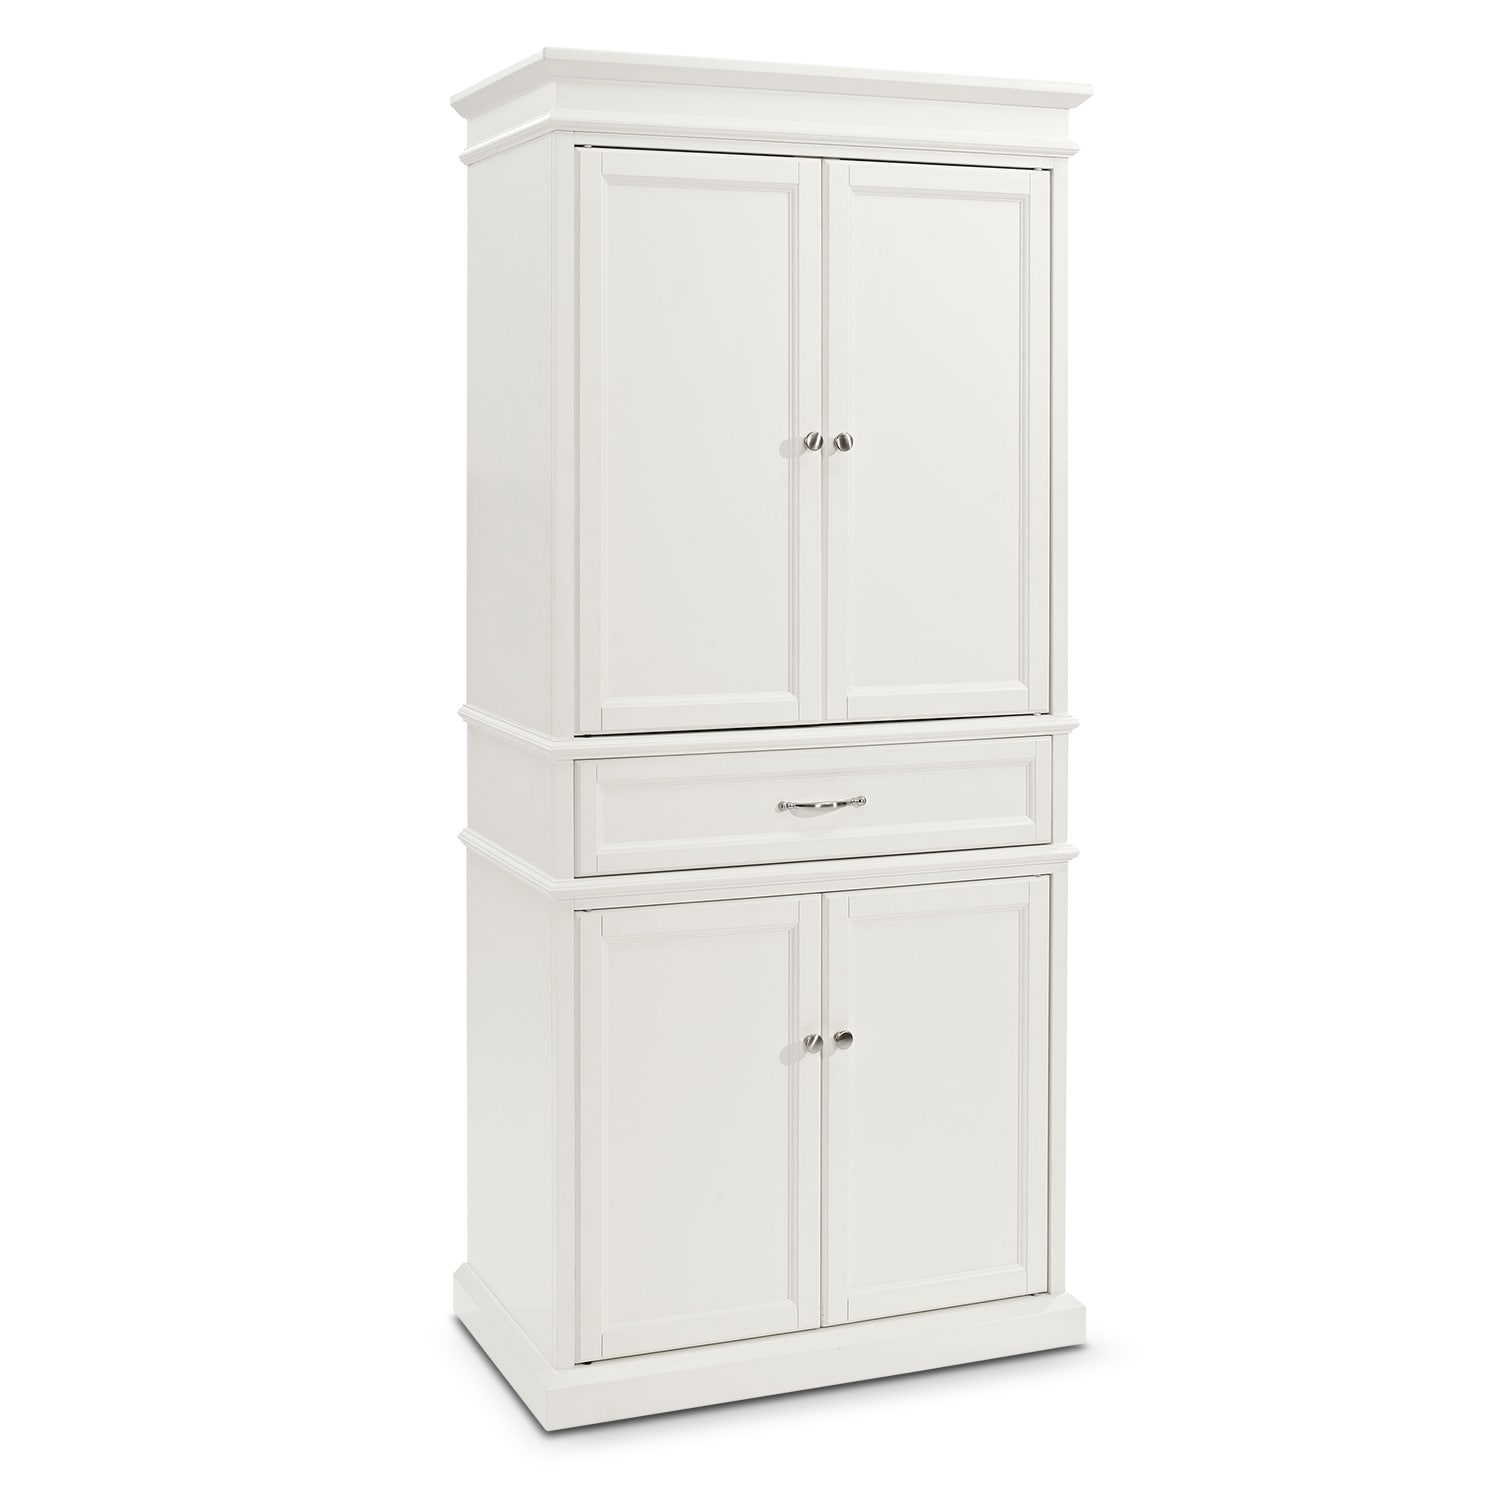 Dining Room Furniture - Midway Pantry - White